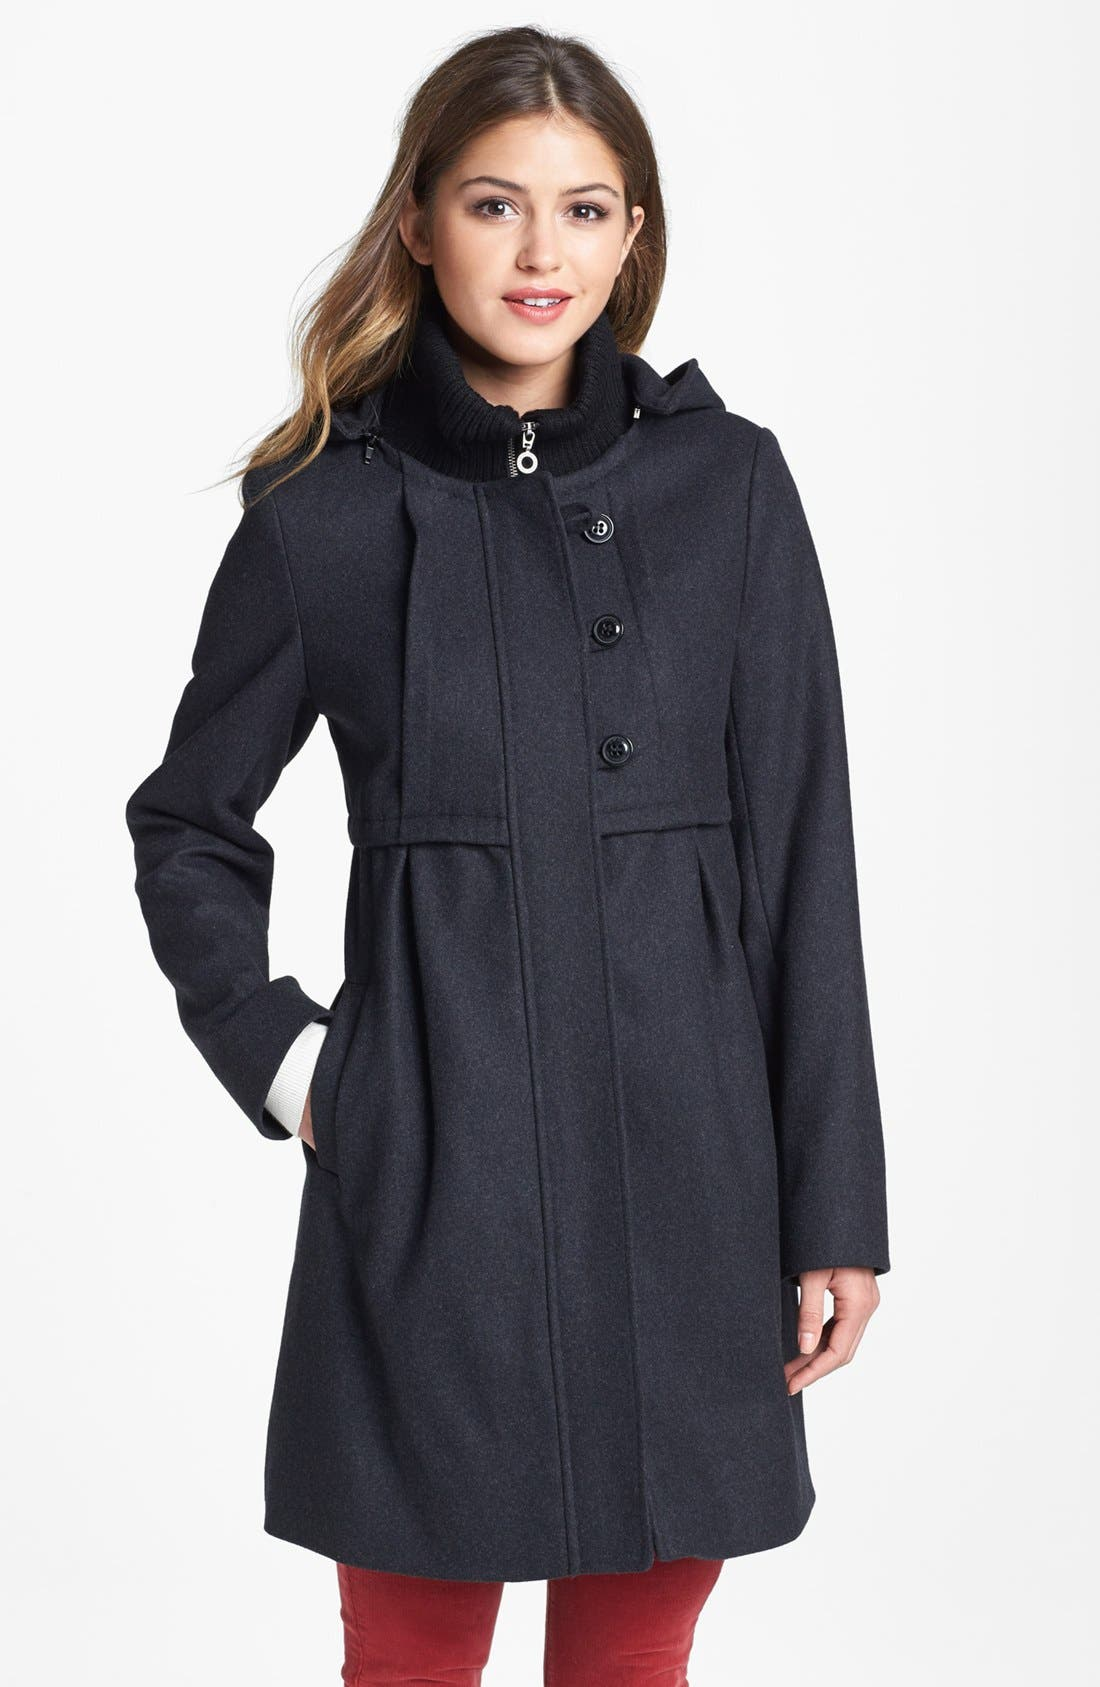 Main Image - DKNY Knit Collar Babydoll Coat with Detachable Hood (Online Only)